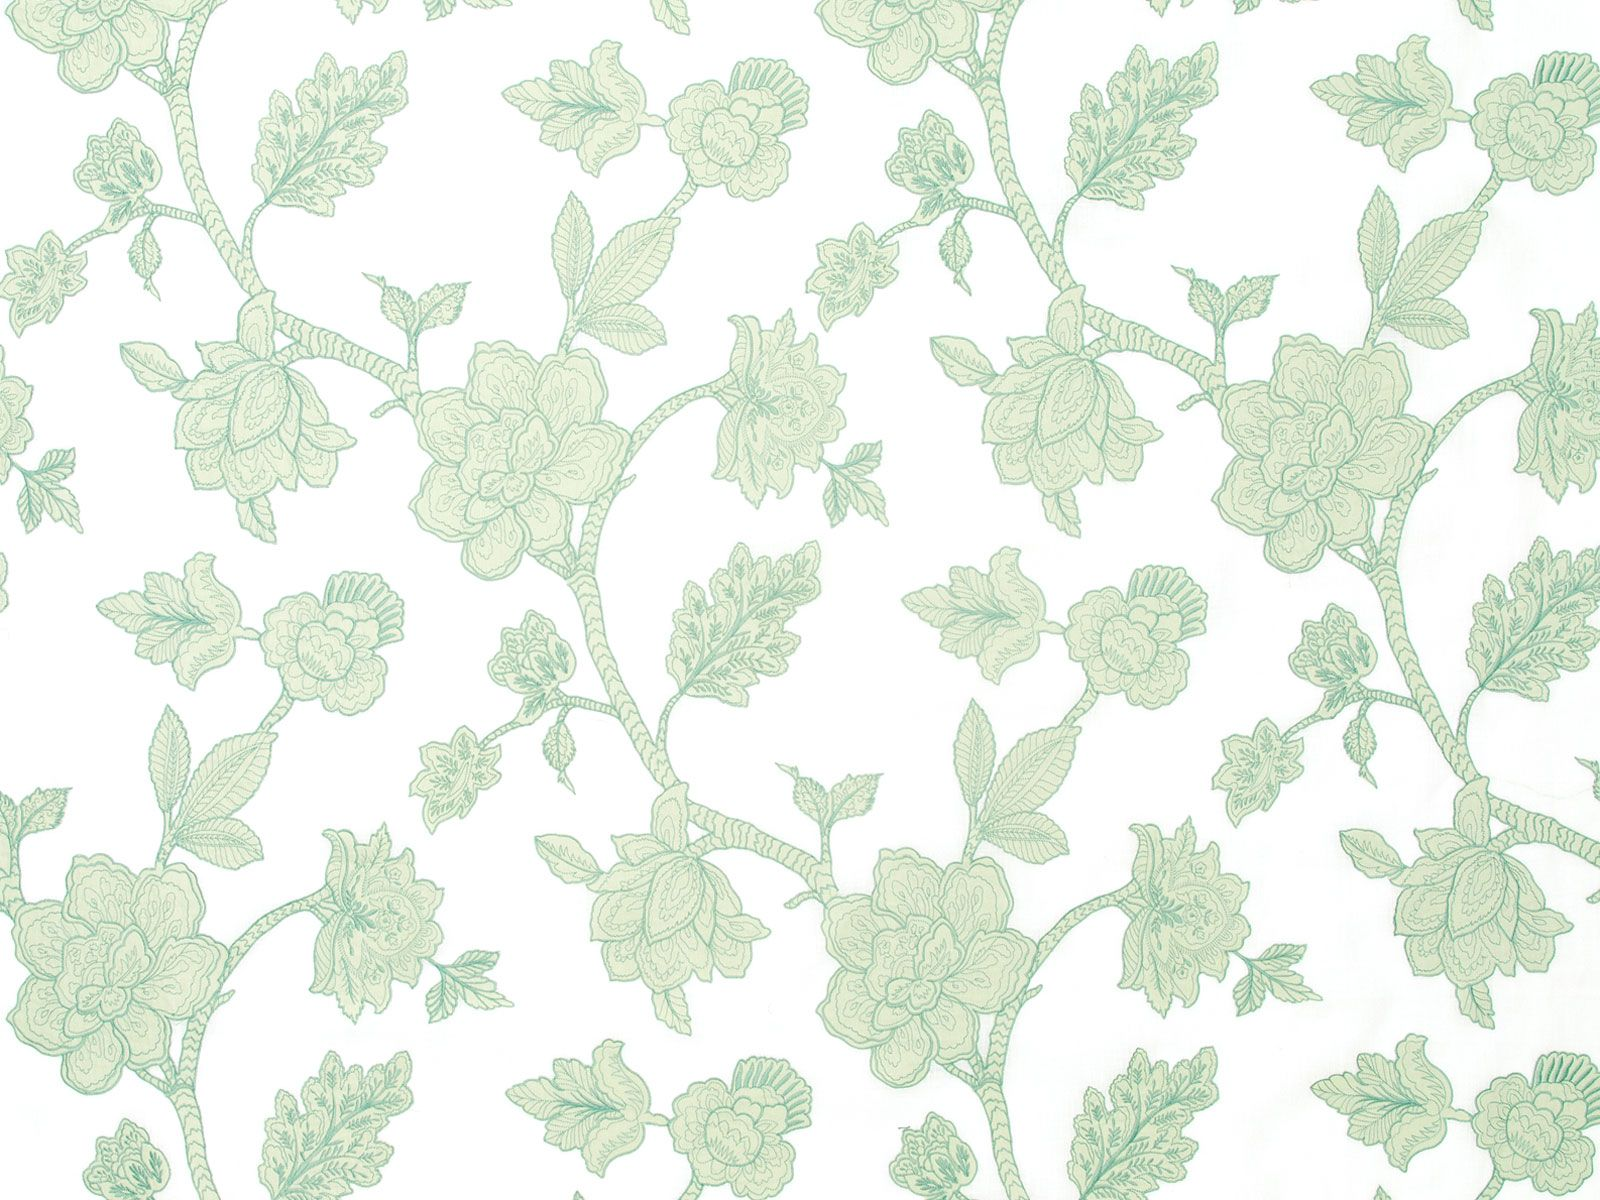 |MUSTIQUE - Aqua Mist A Jacobean floral design. Detailed with precision hand cutting, appliqued on a light linen piece dyed ground. Meticulous stitchery gives dimension to the floral motifs. Beautiful hand and drape. For window and bedding applications.Zimmer + Rohde